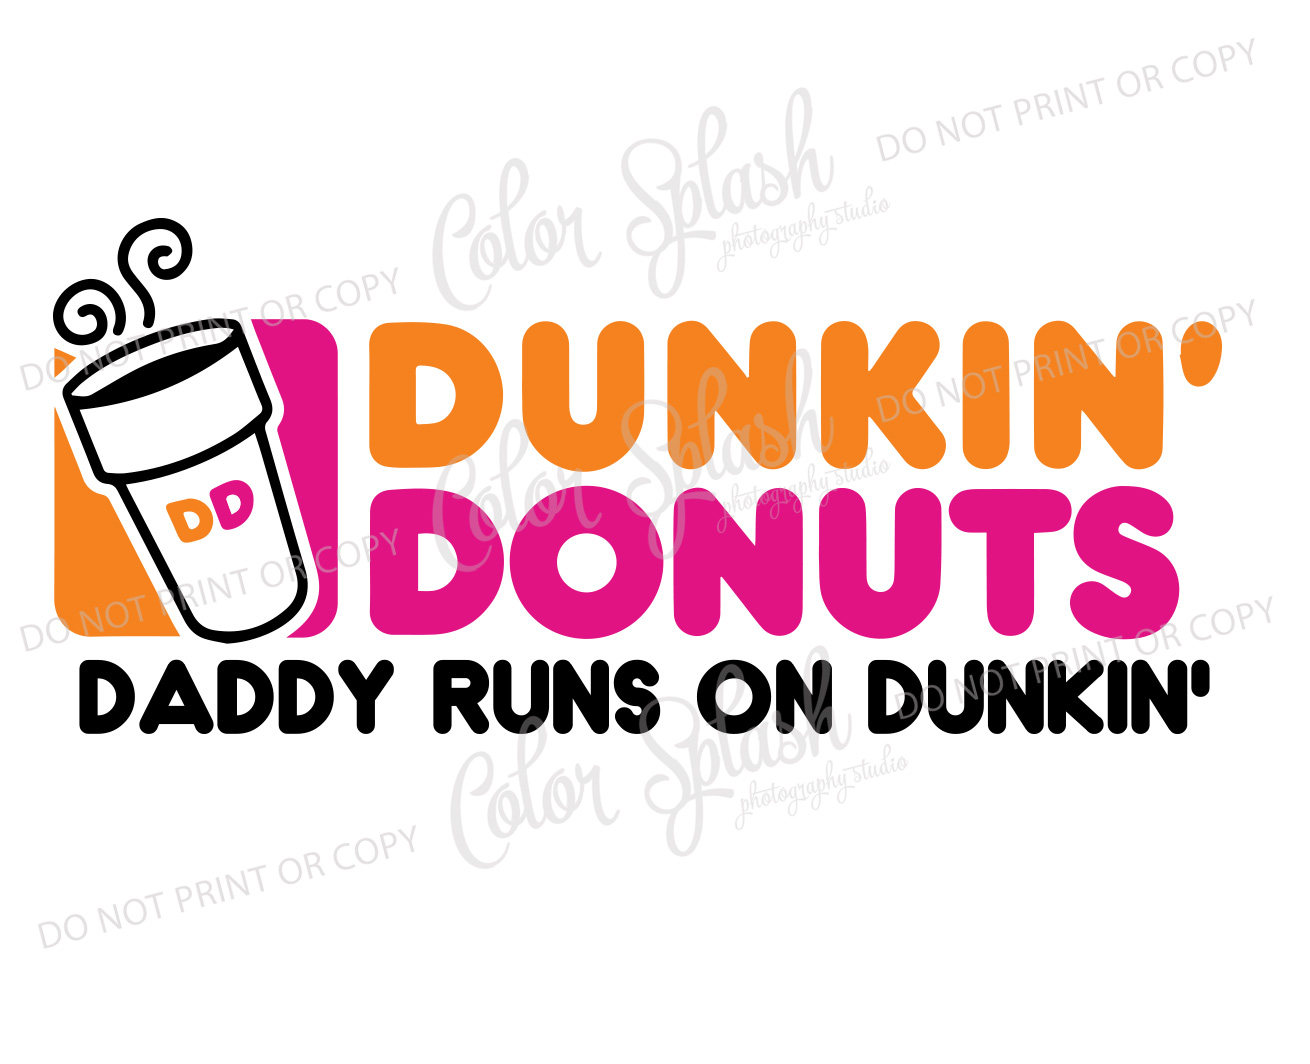 Dunkin donuts, daddy runs on dunkin coffee SVG, DXF, EPS, clipart, svg  cuttables, clip art, Cricut, Silhouette, Cutting File.